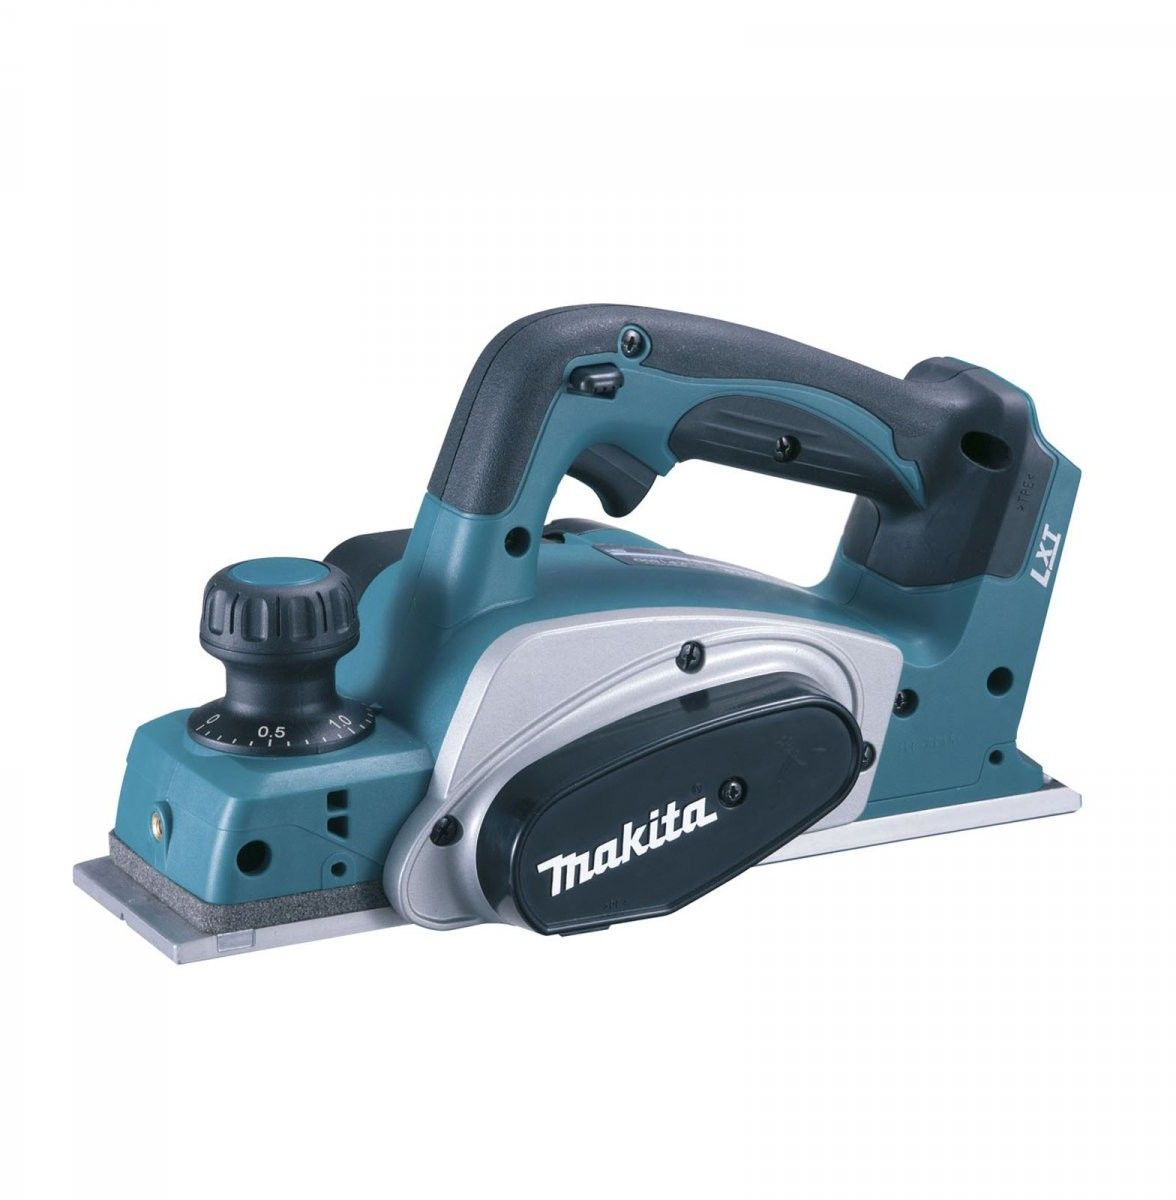 Akumulatorowy strug do drewna Makita DKP180Z 18V